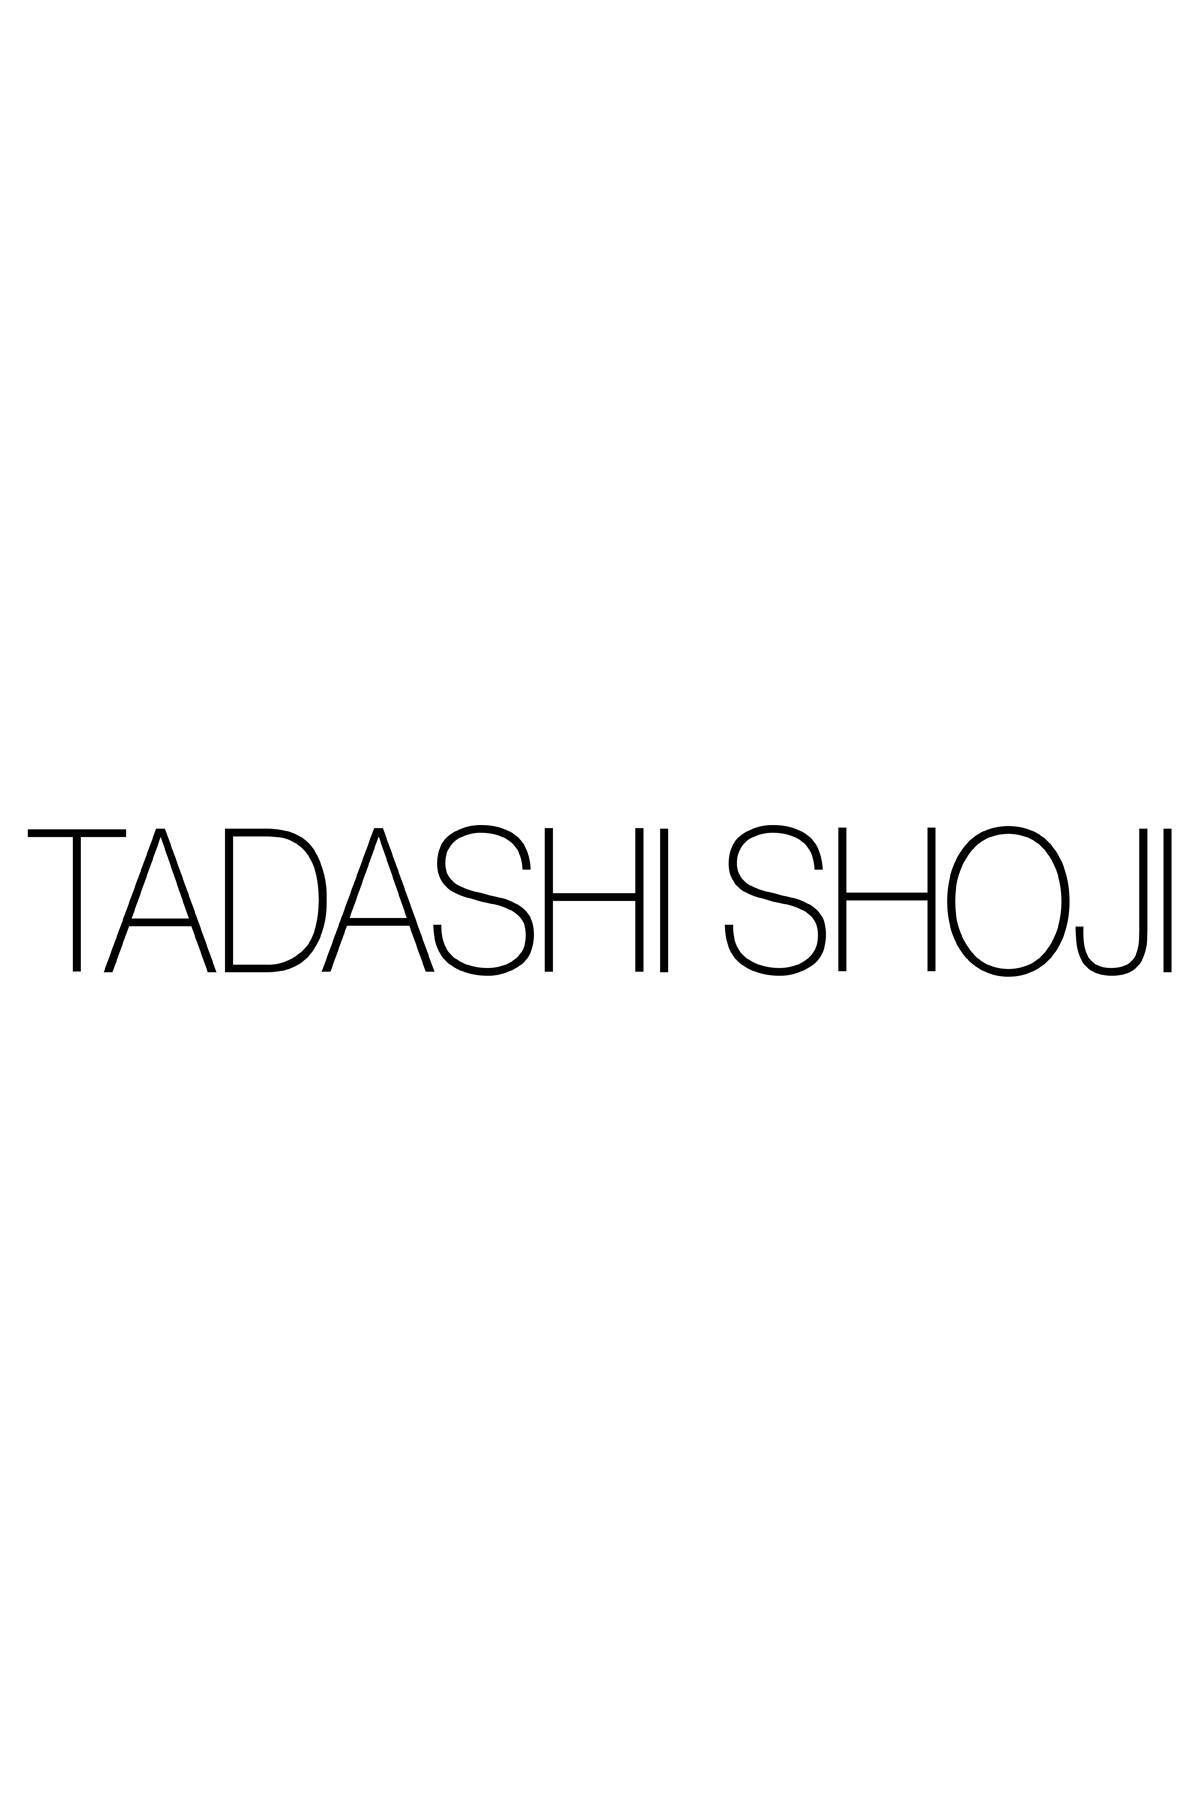 Tadashi Shoji Plus Size - Corded Embroidery on Tulle Boatneck Dress - Detail